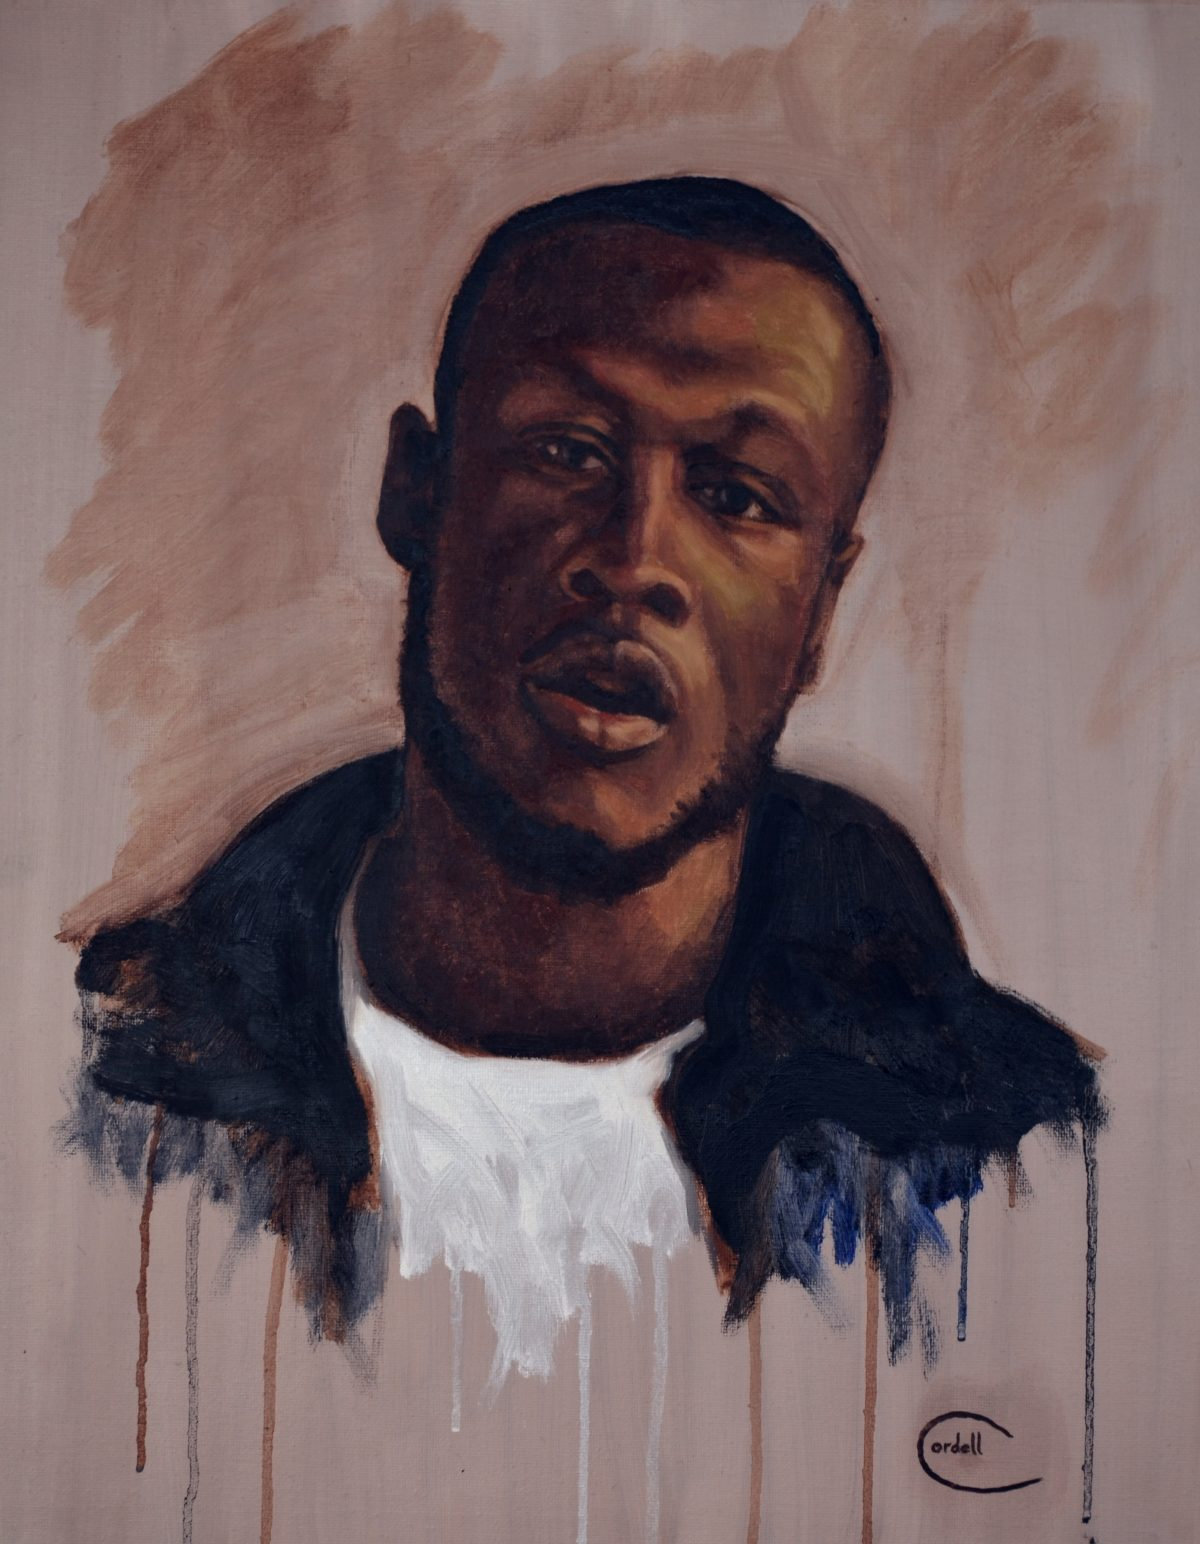 Stormzy oil painting portrait